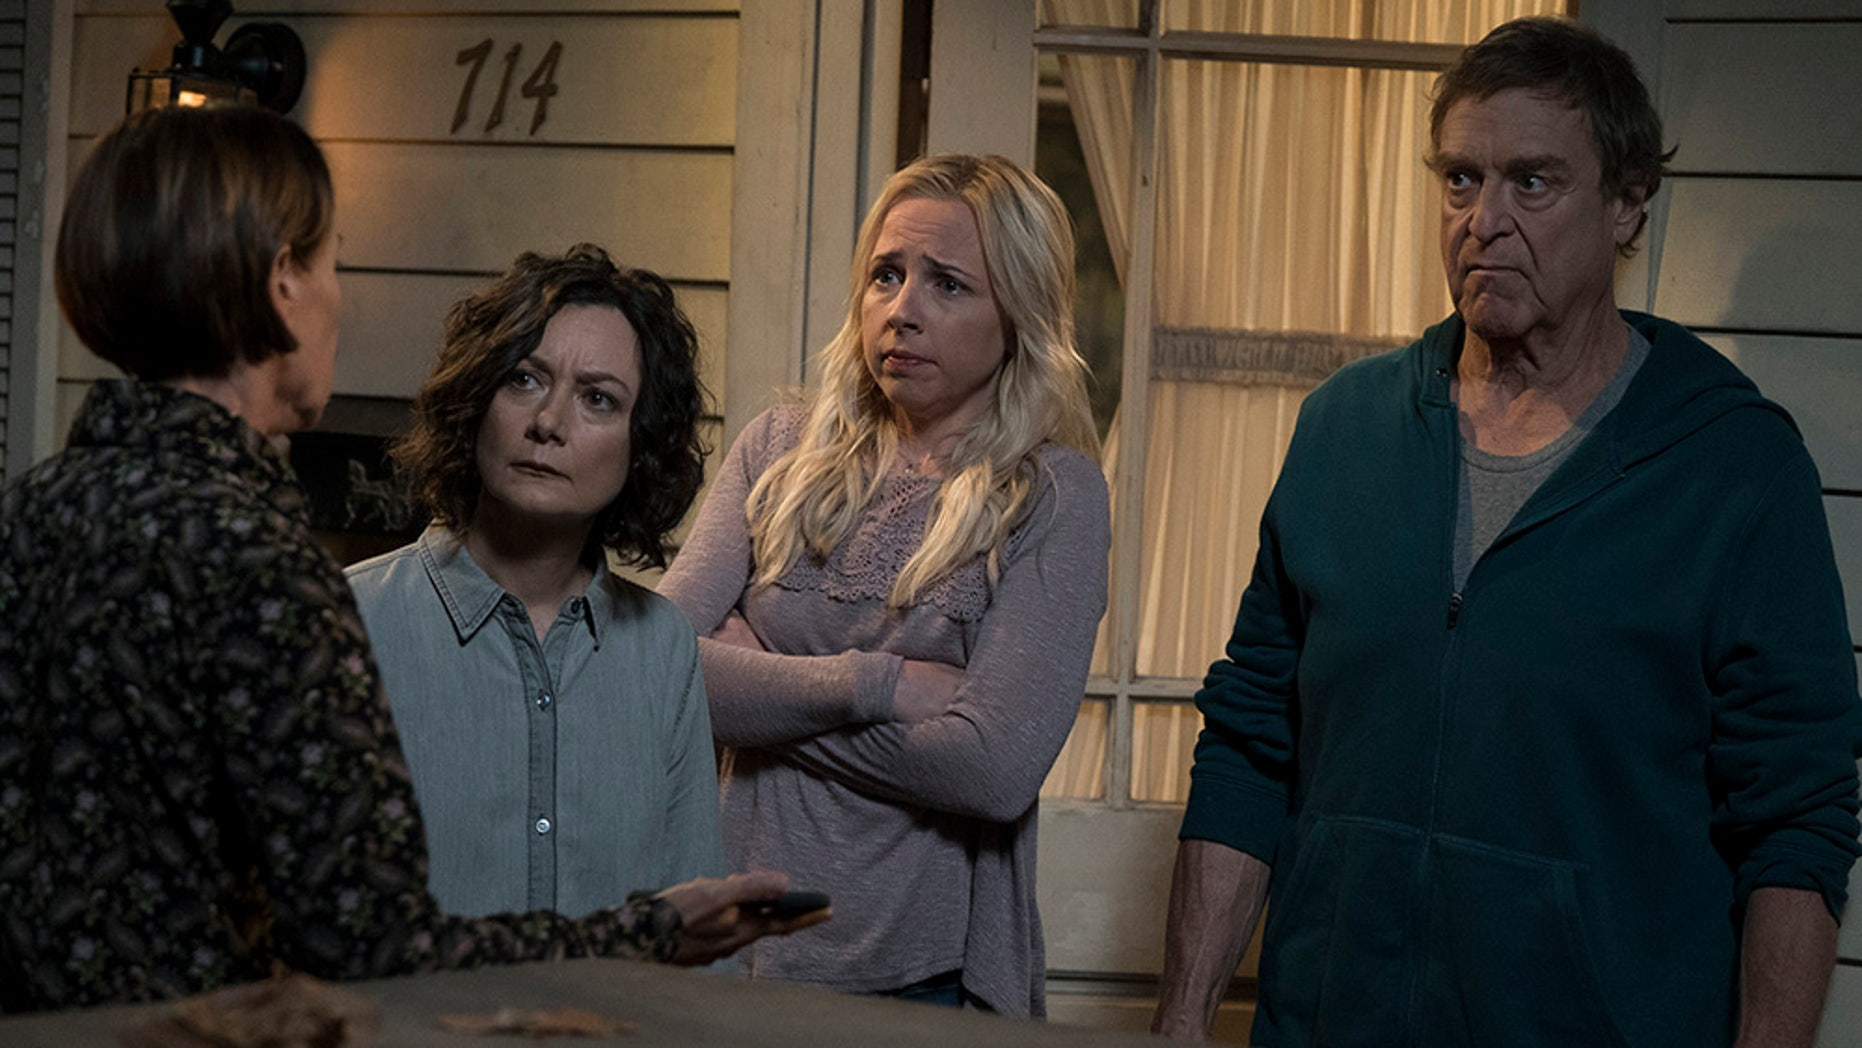 'The Conners' dealt with the death of Roseanne Barr's character in the premiere.